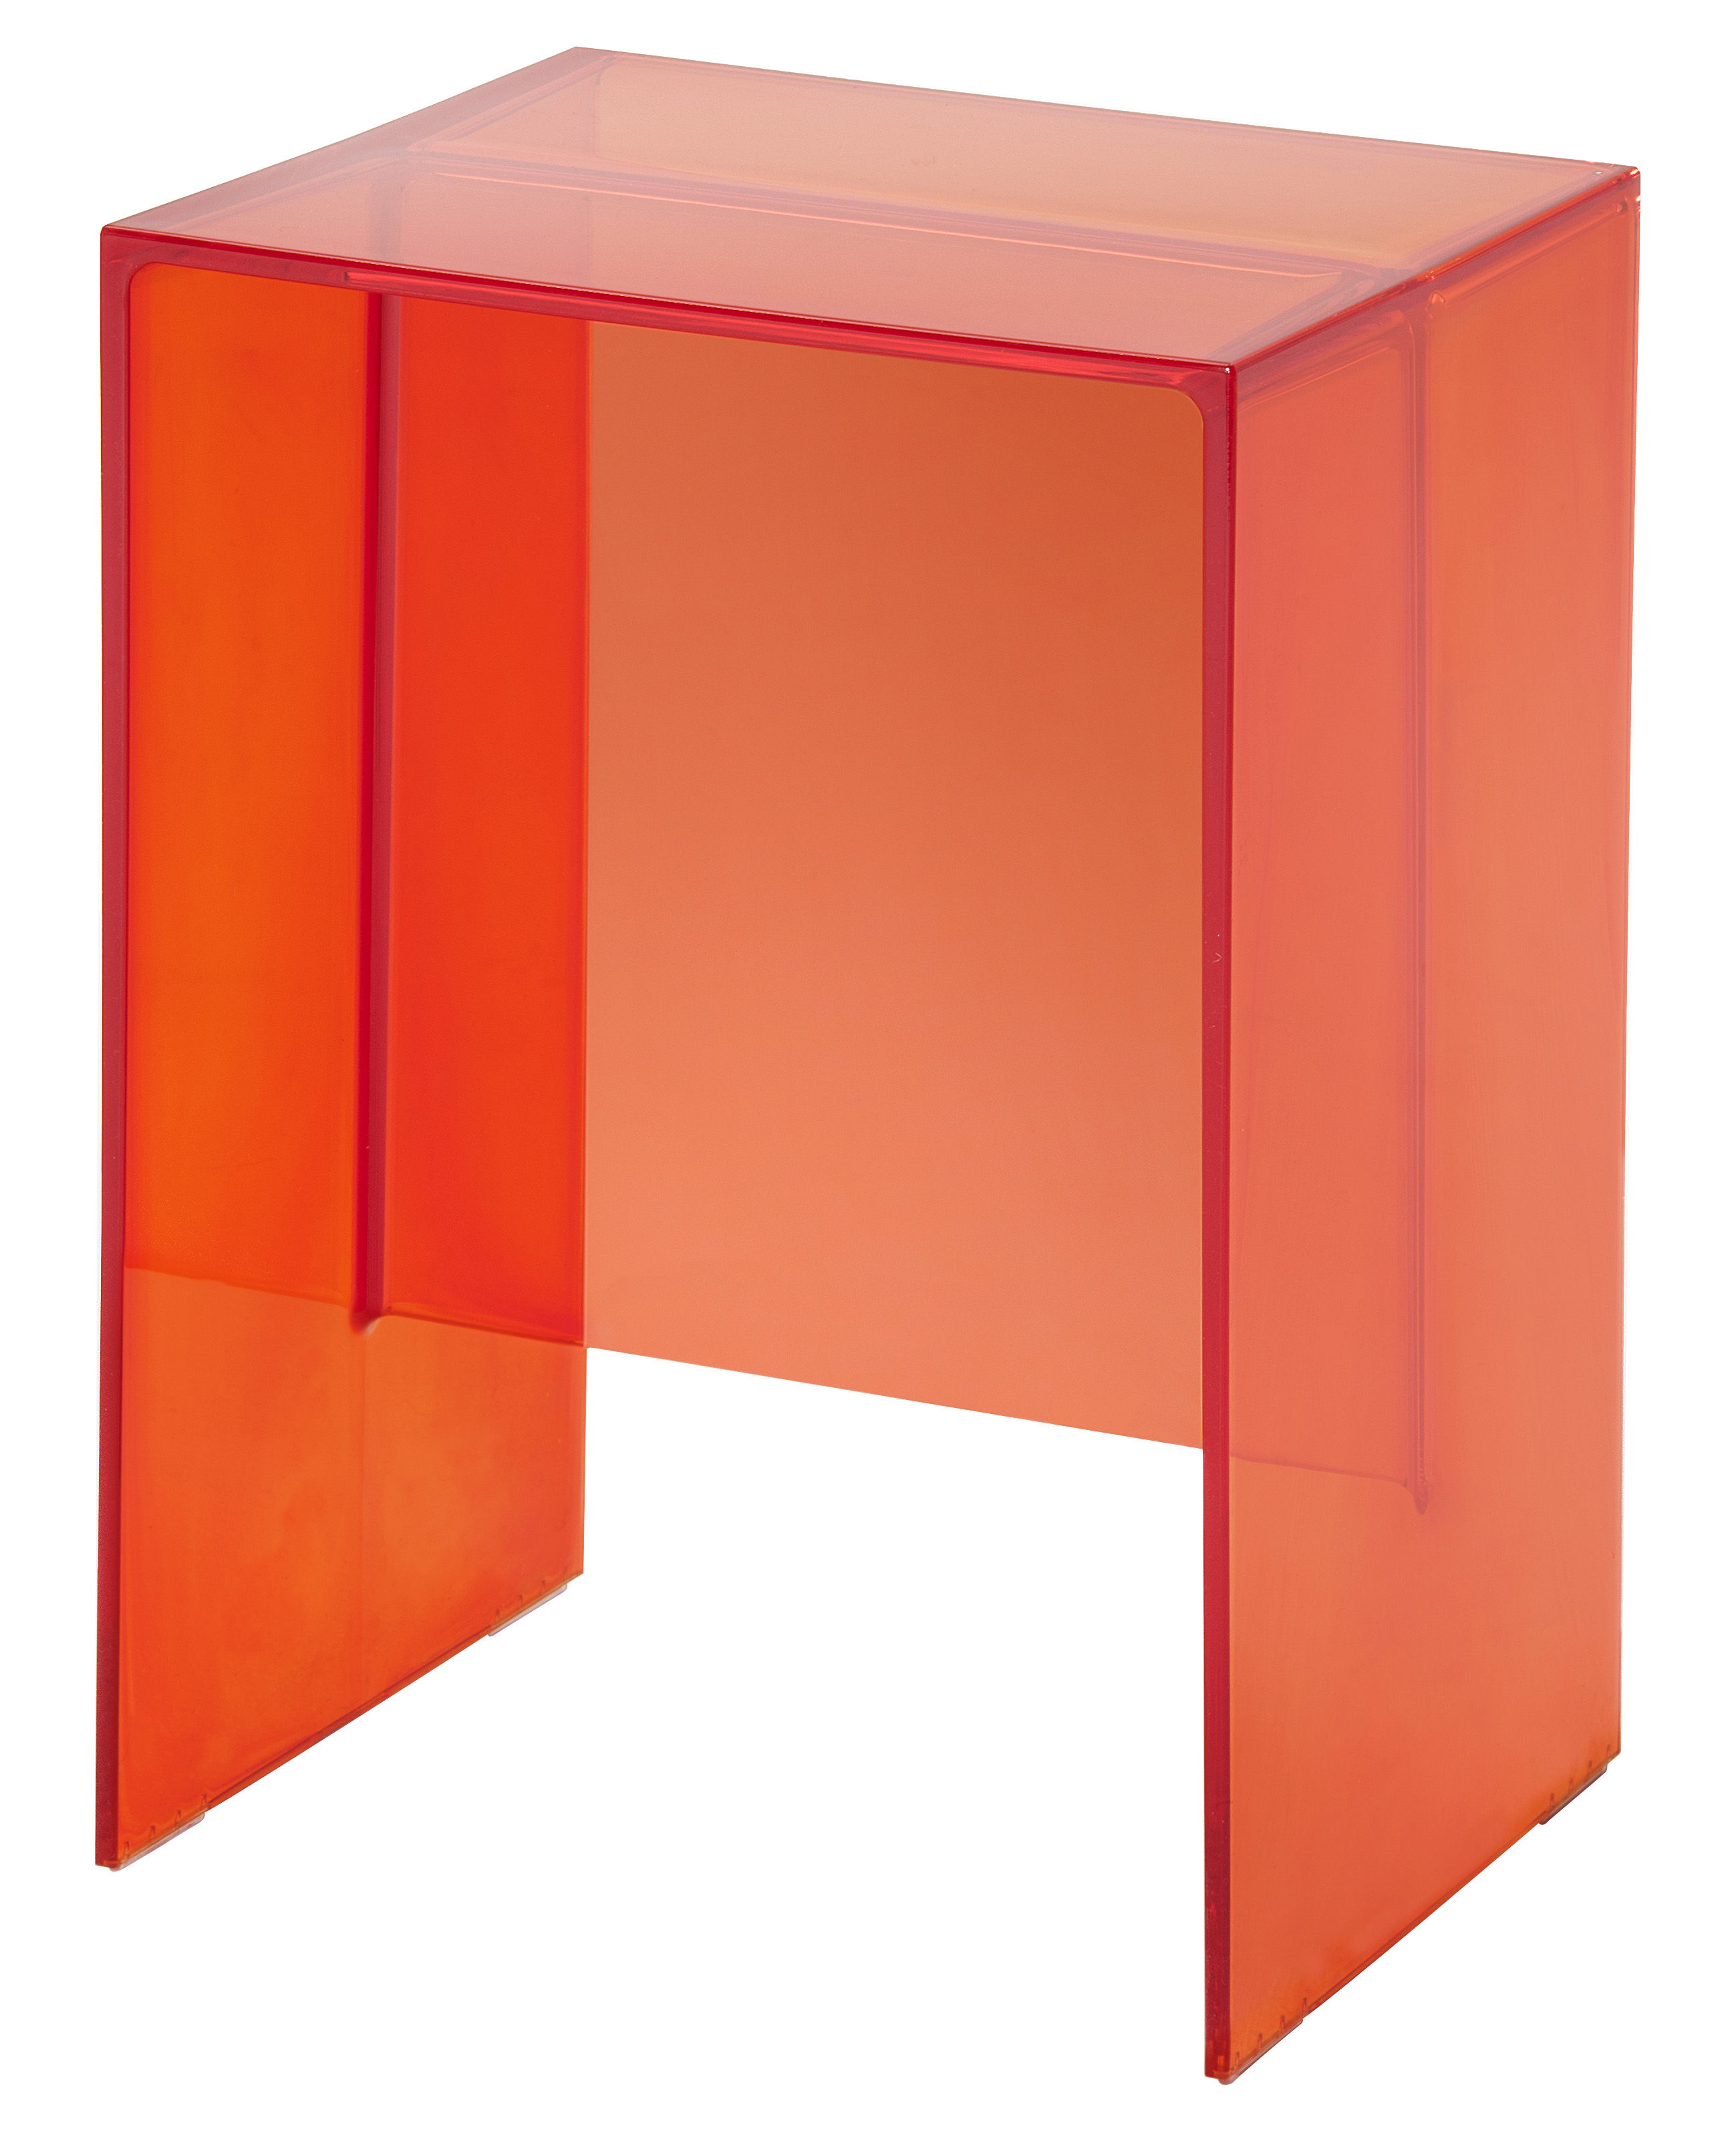 max beam supplement table tangerine orange by kartell. Black Bedroom Furniture Sets. Home Design Ideas